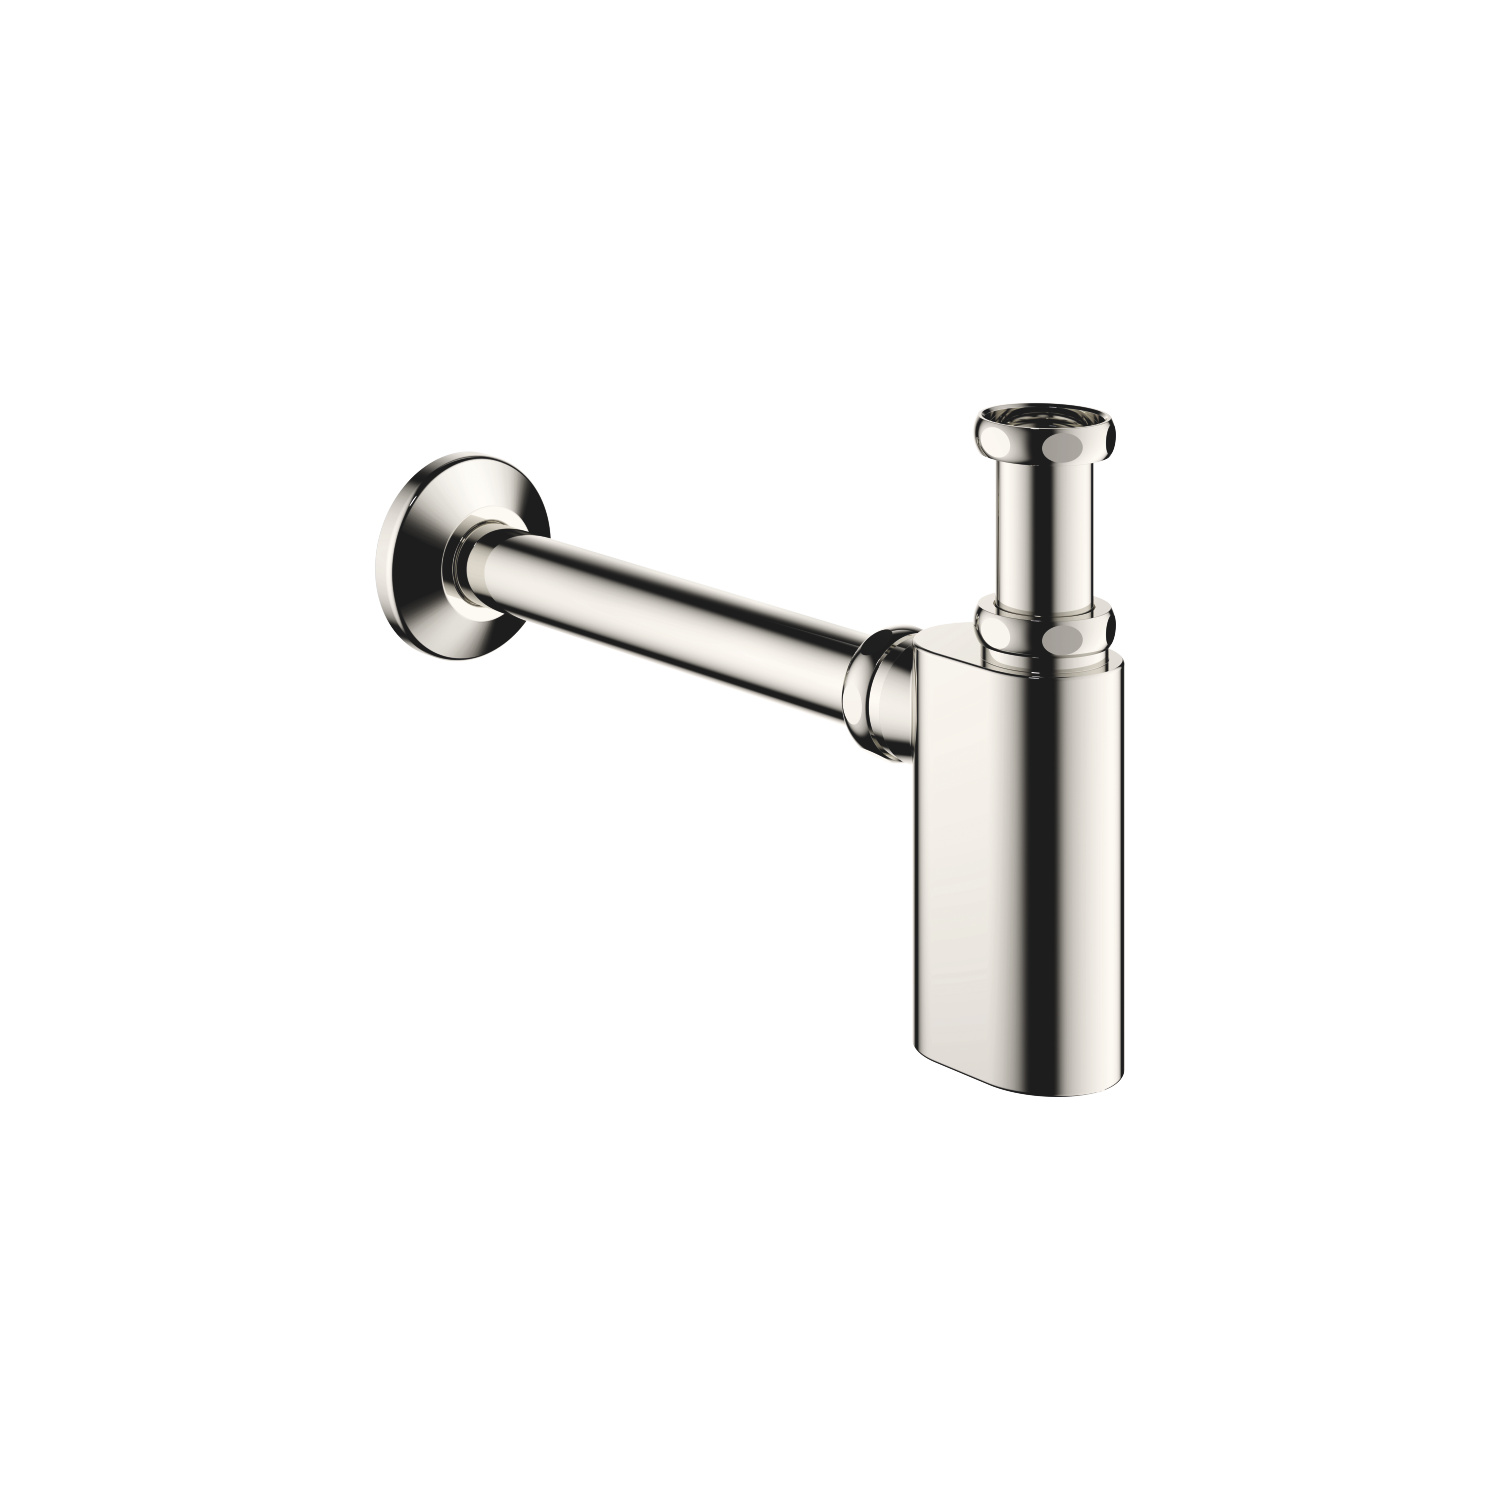 "Siphon for basin 1 1/4"" - platinum"